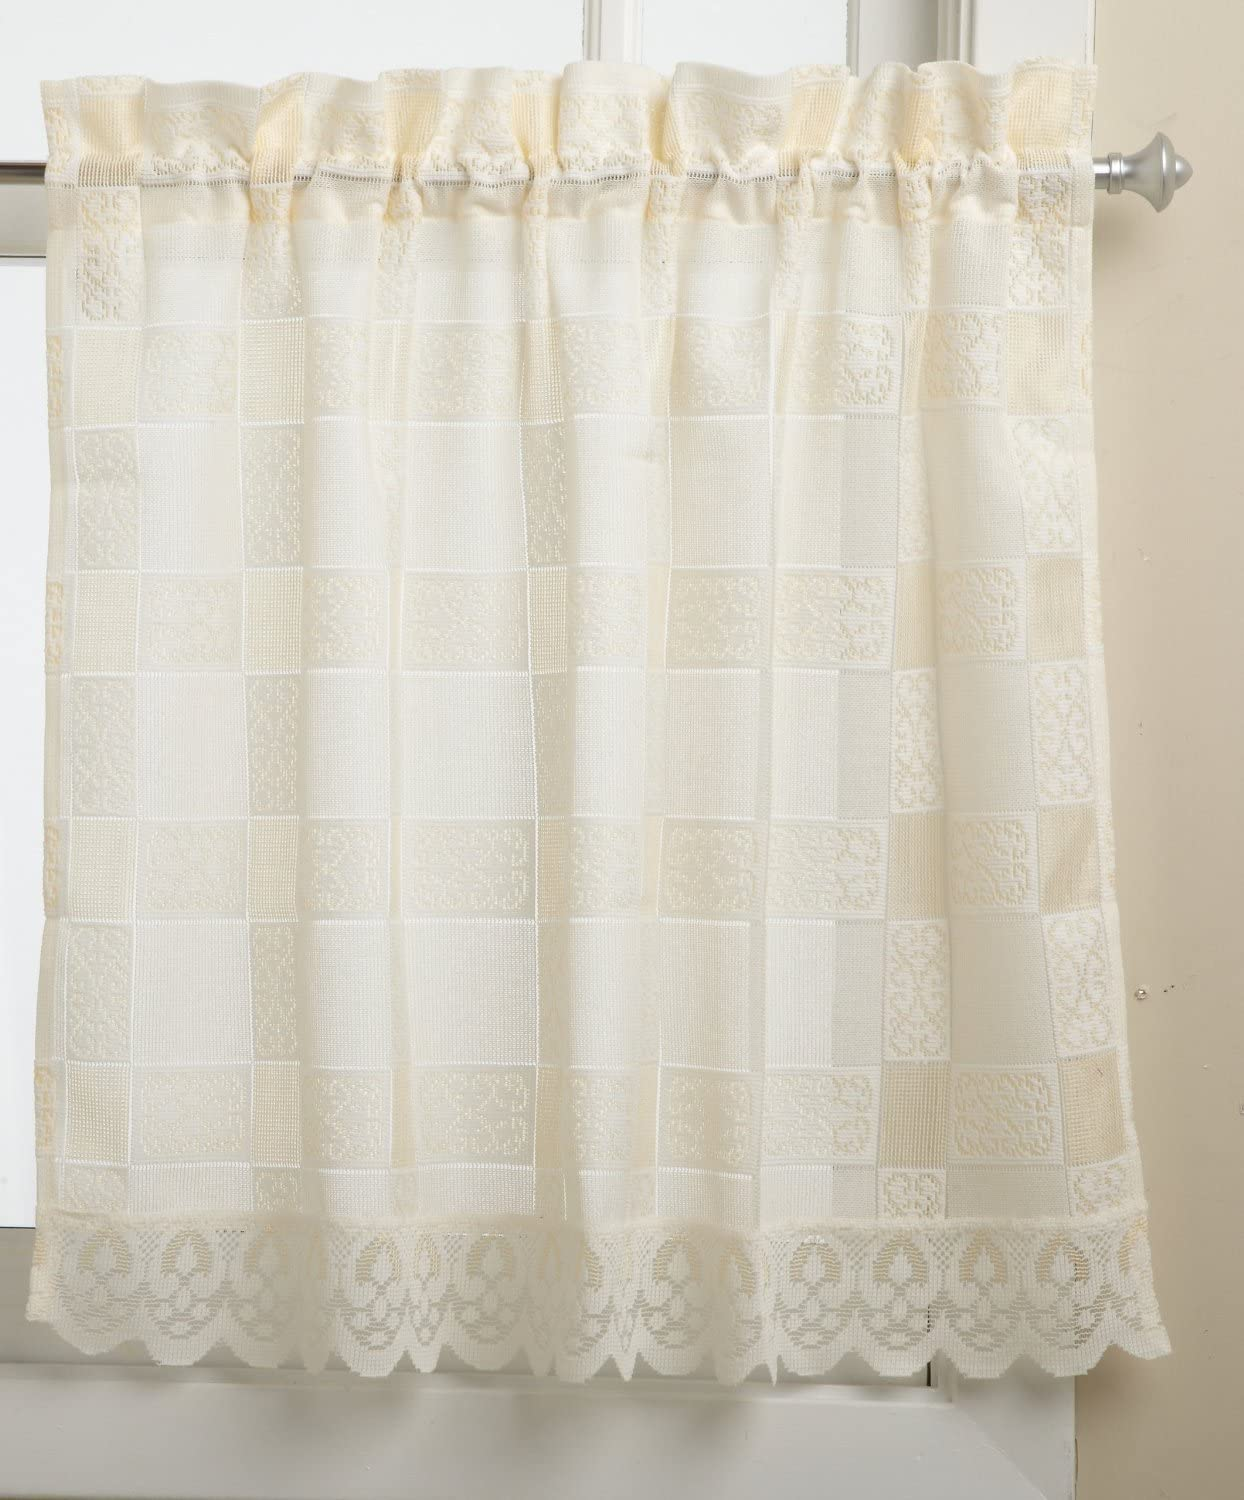 LORRAINE HOME FASHIONS Calais 60-inch x 36-inch Tier Curtain Pair, Ecru